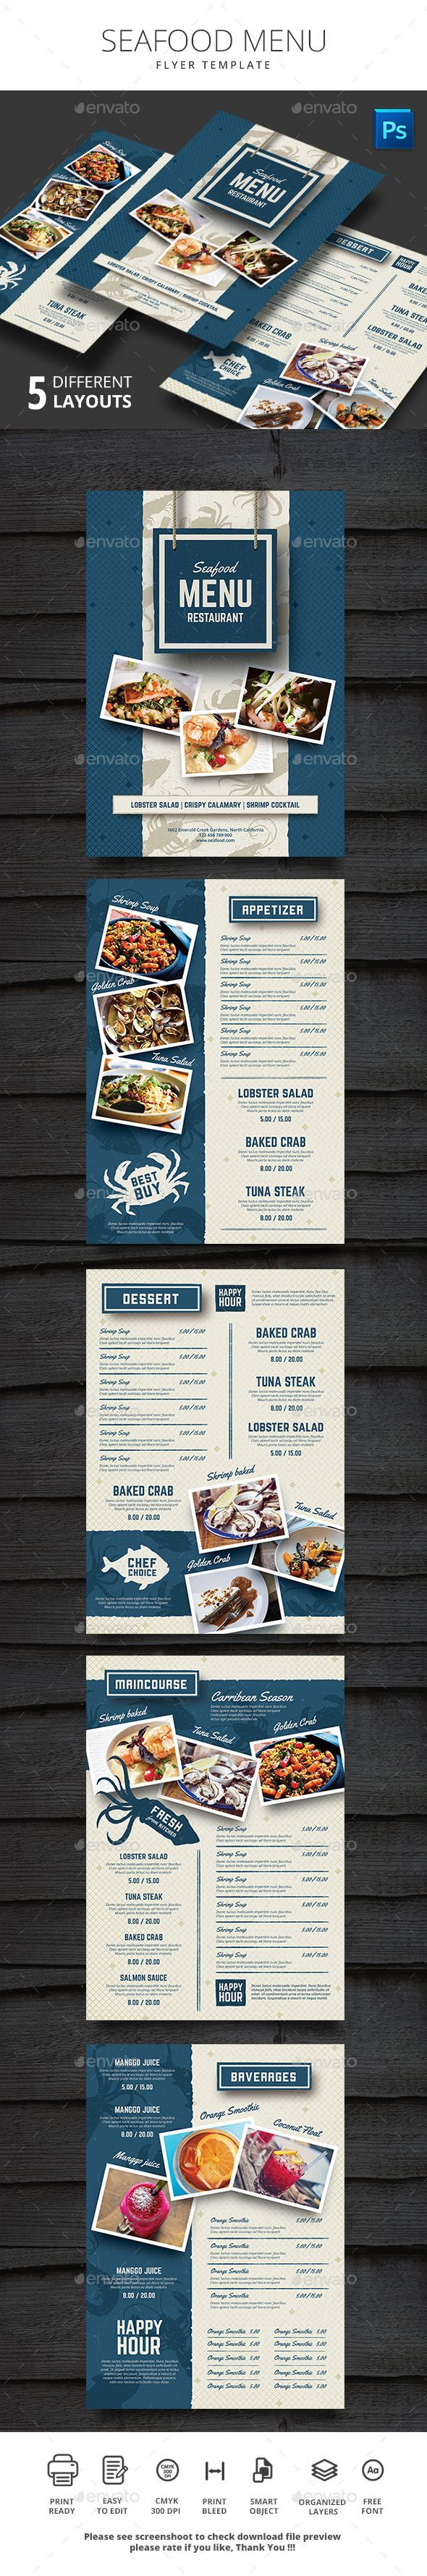 Seafood Restauran Menu  Menu Design Templates Seafood And Menu